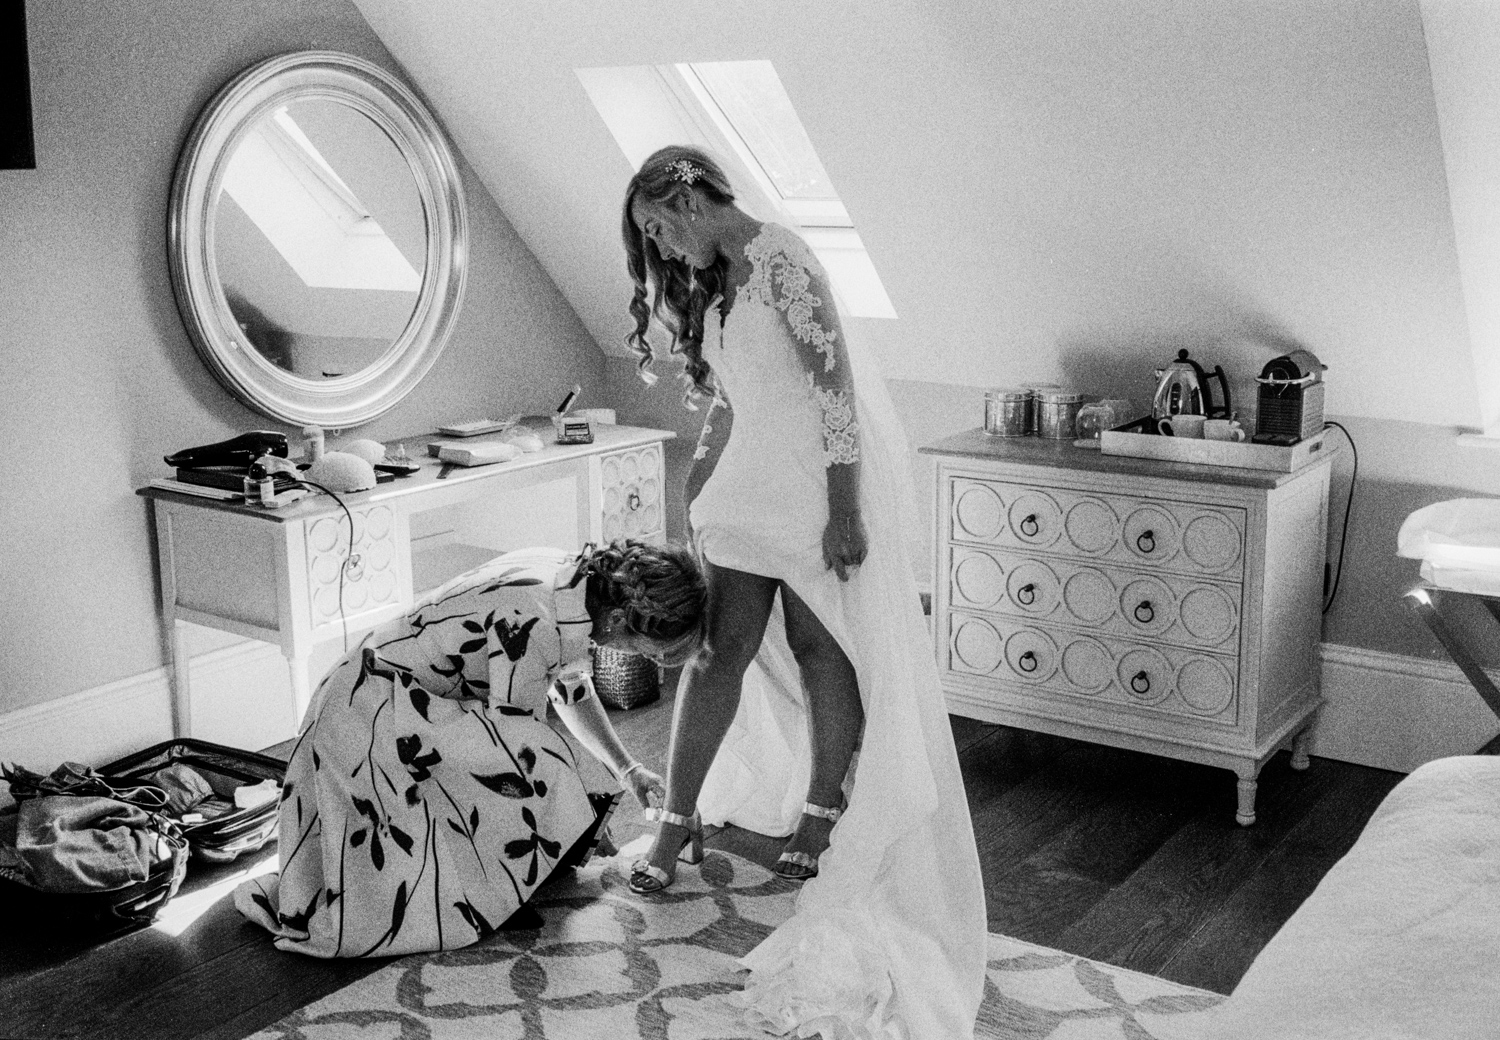 Wedding photography with Ilford Delta 3200